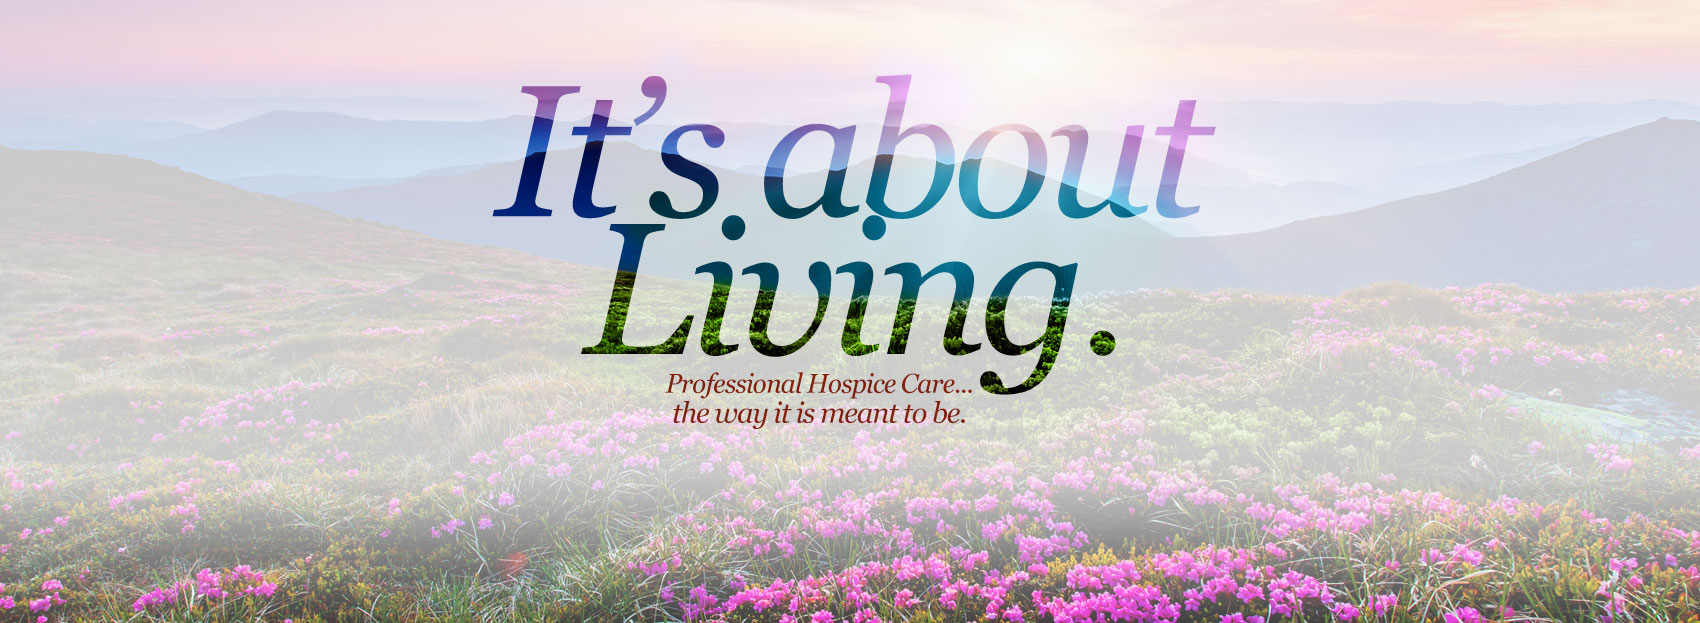 Setx Hospice Agency Best Hospice Care Of Texas Setx